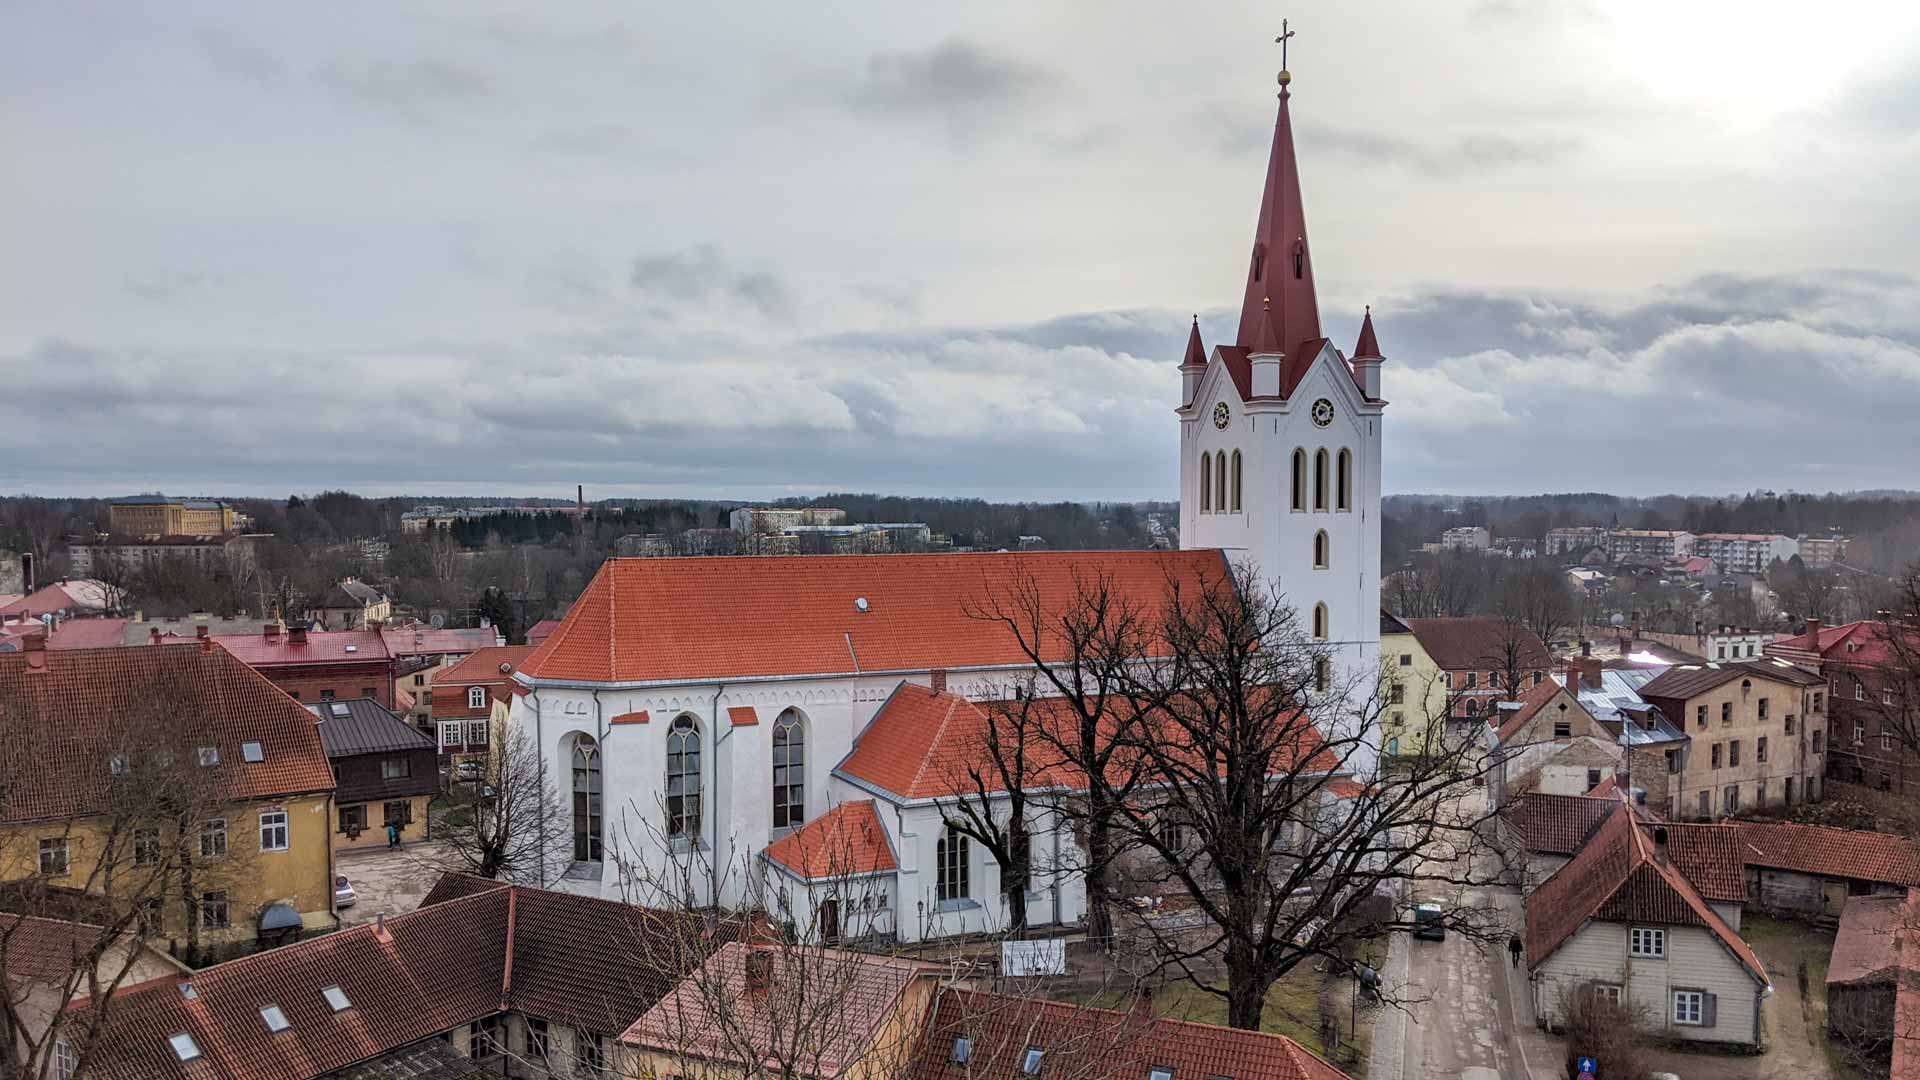 Church of Saint John's, Cesis, Latvia